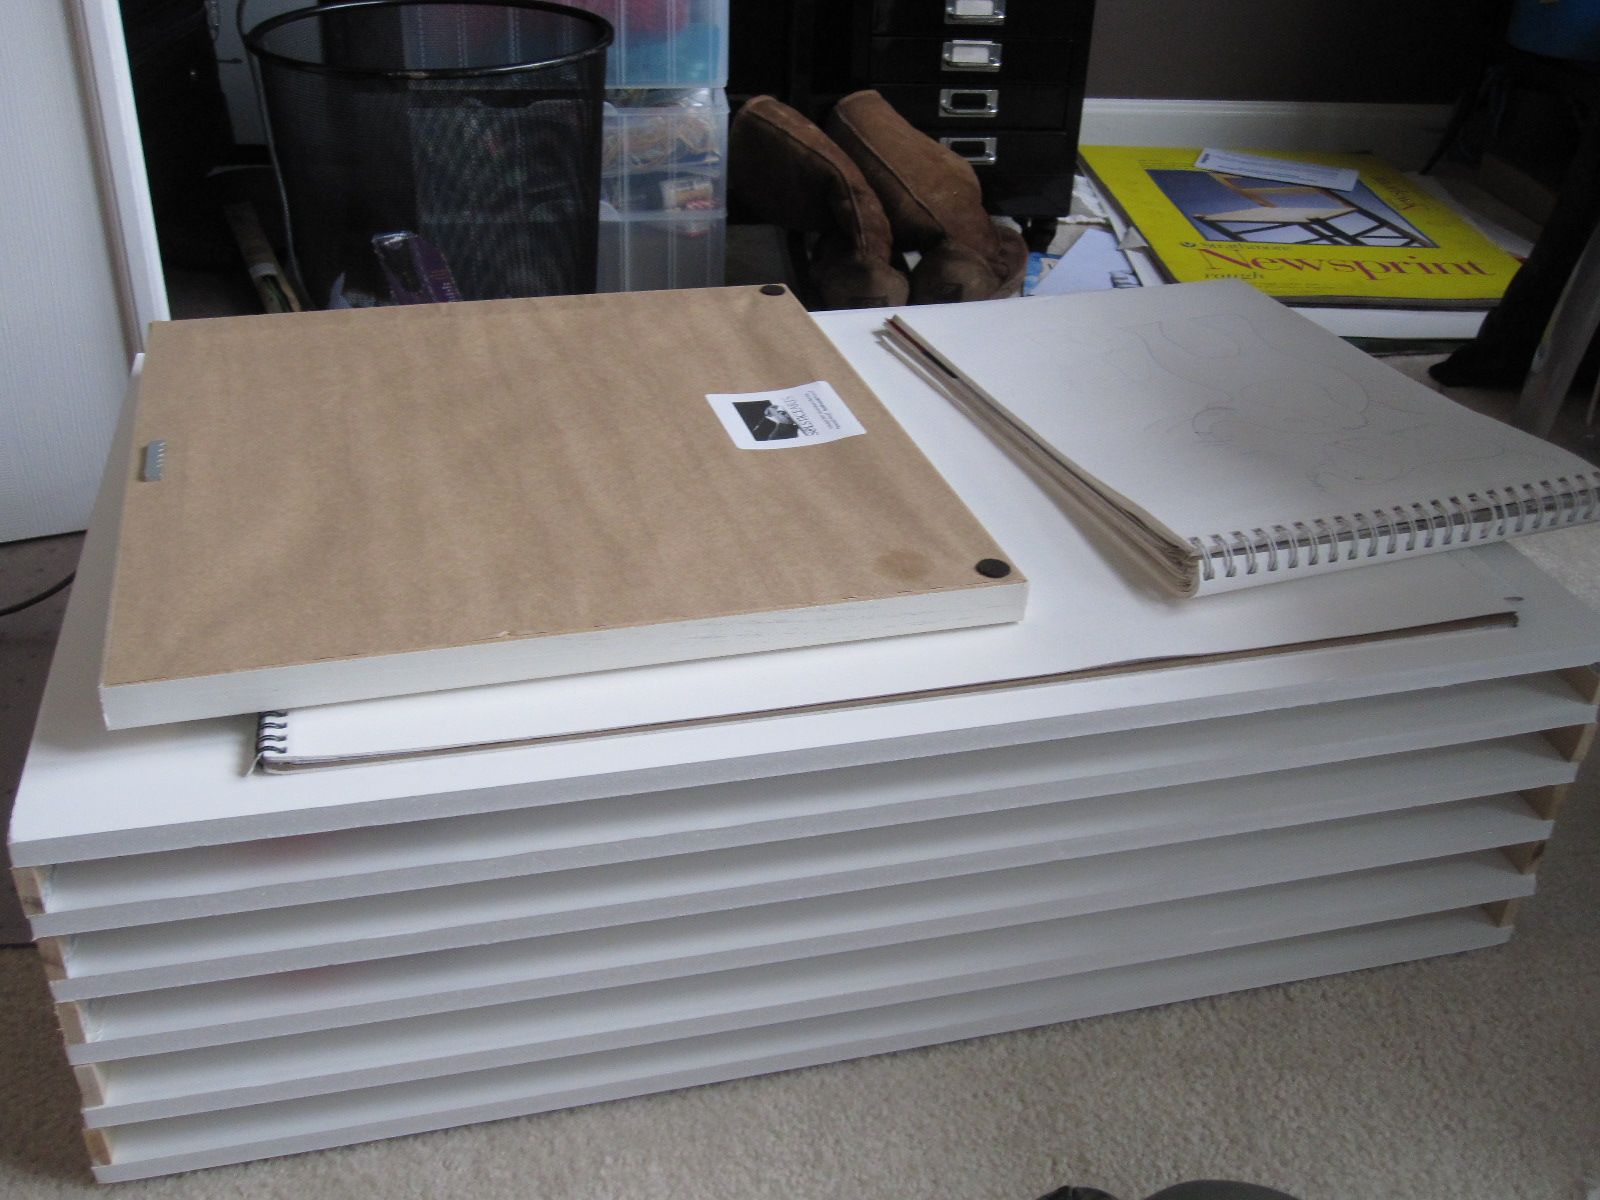 Charmant DIY Flat File Made Out Of Foam Core. Not Sure If This Is The Longest  Lasting Option, But Cheap And Archival.